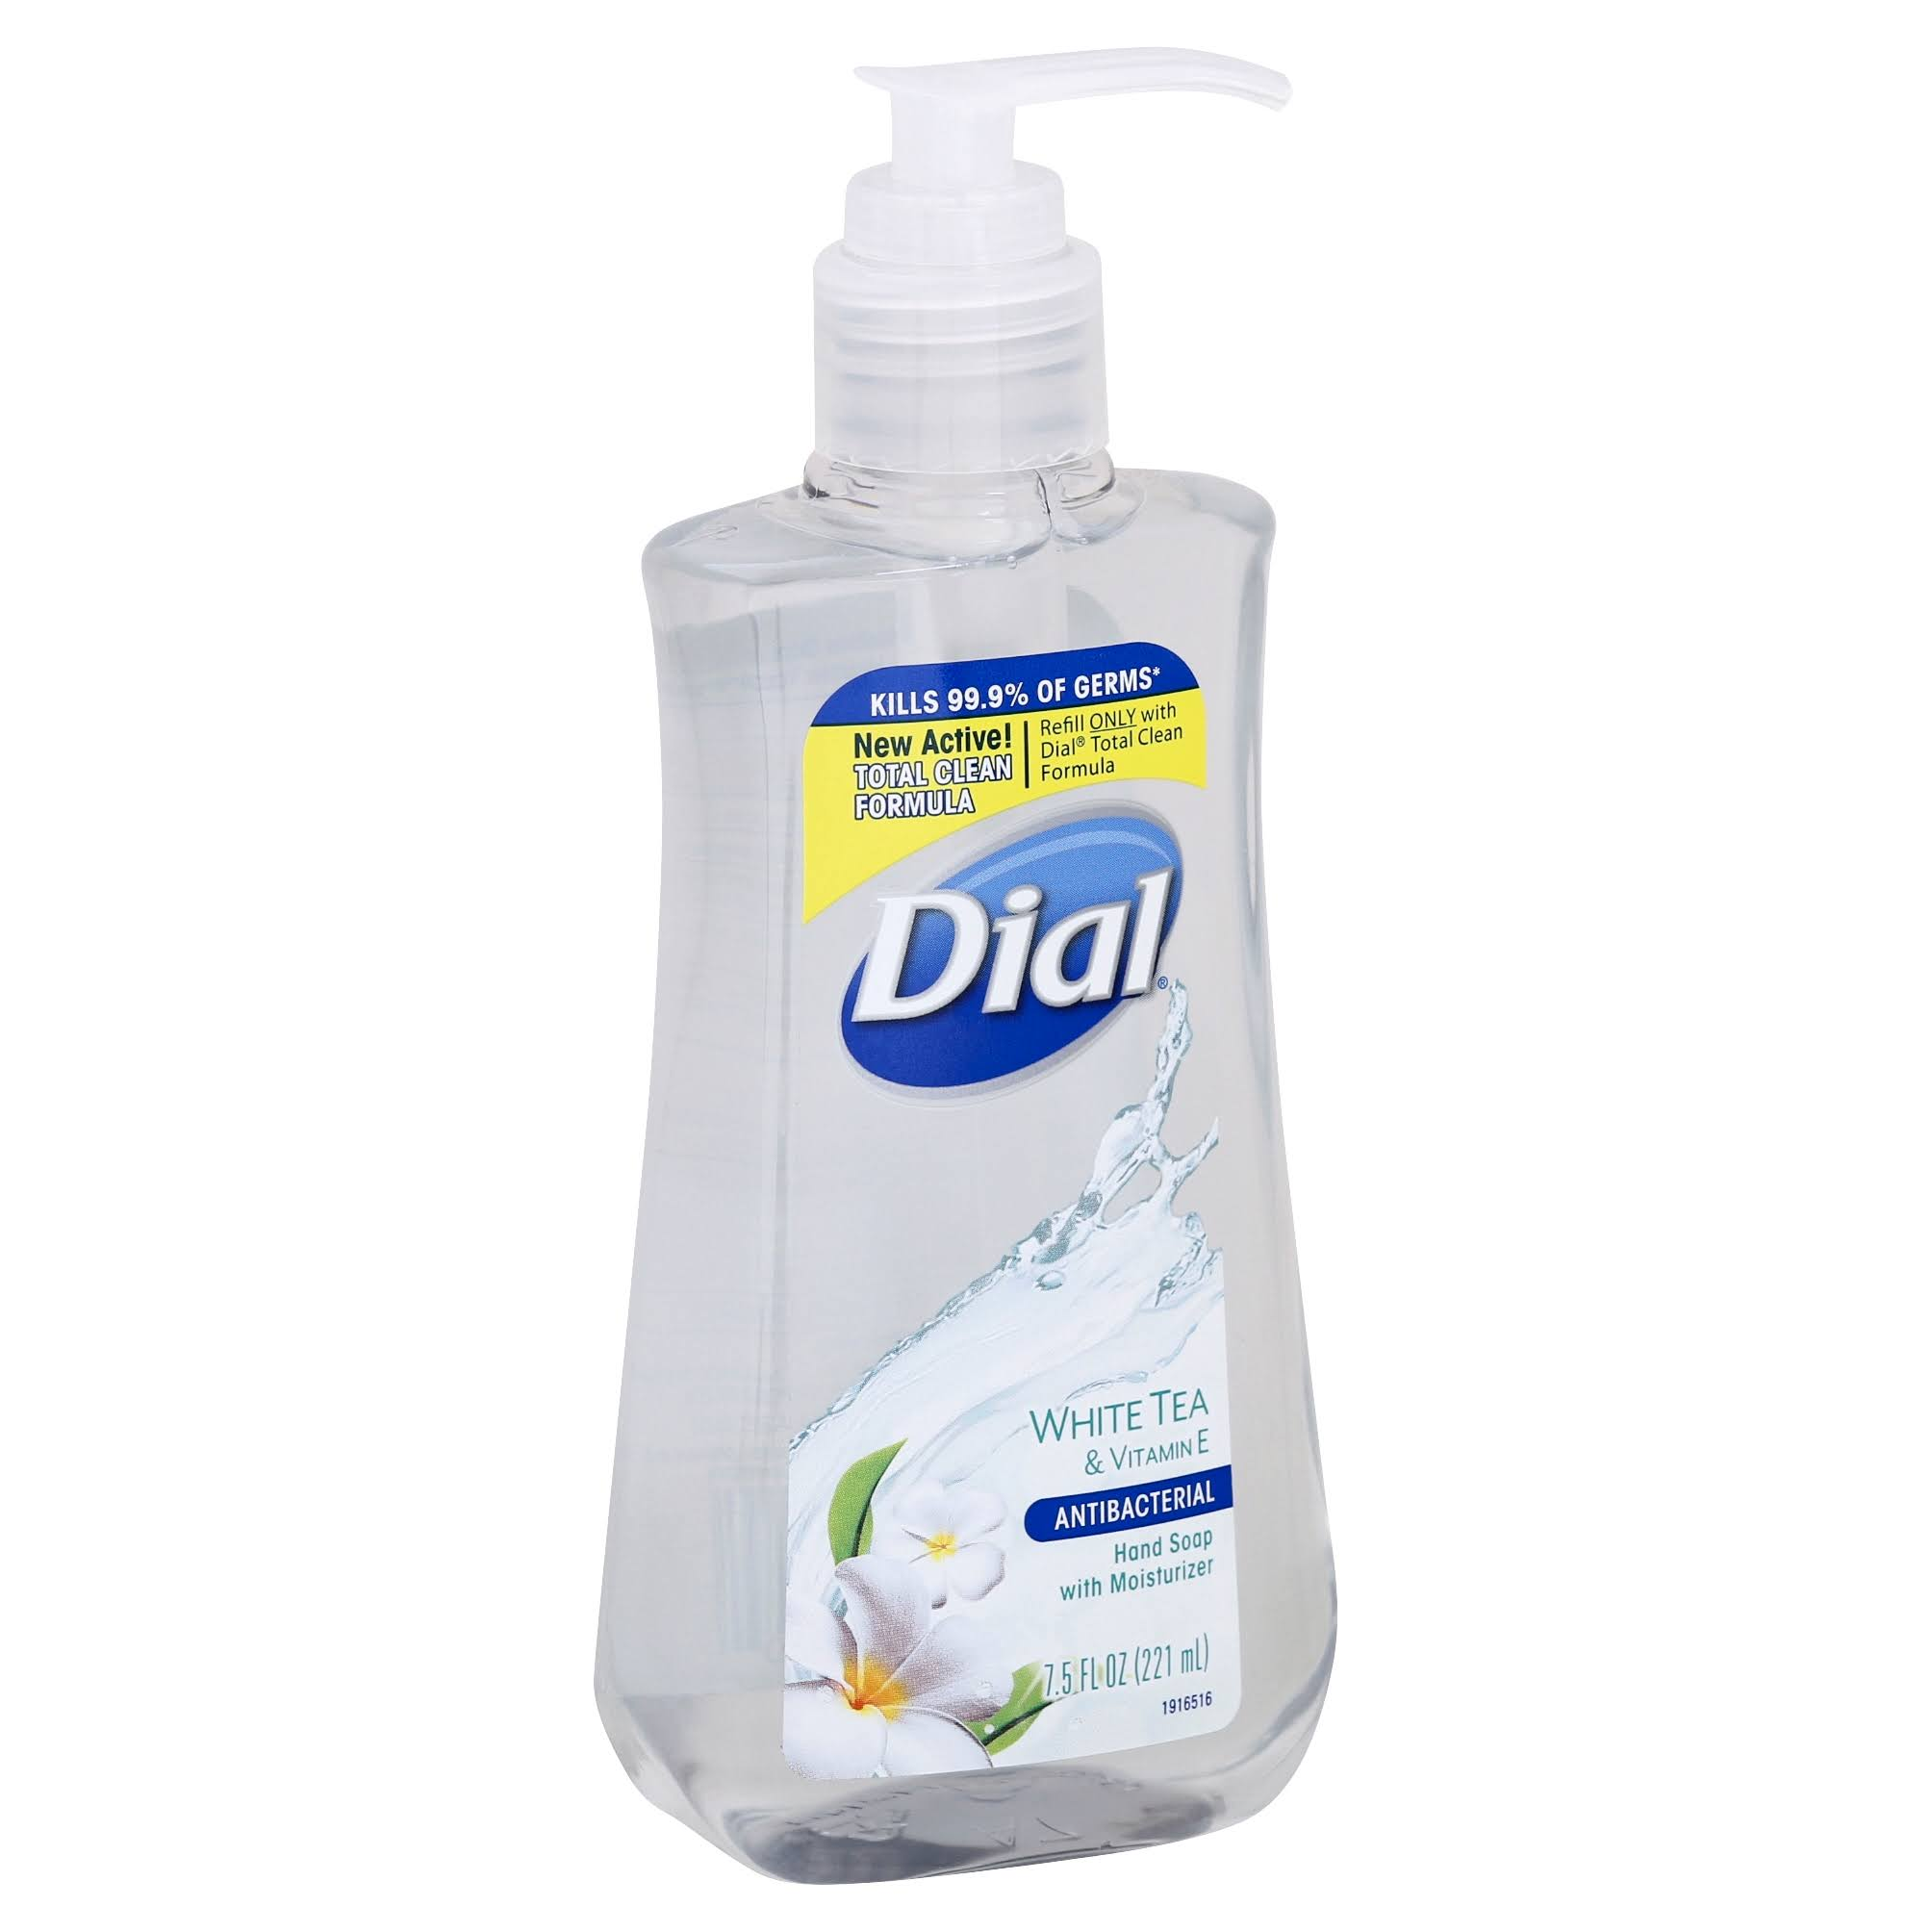 Dial Antibacterial Liquid Hand Soap - White Tea & Vitamin E, 7.5oz